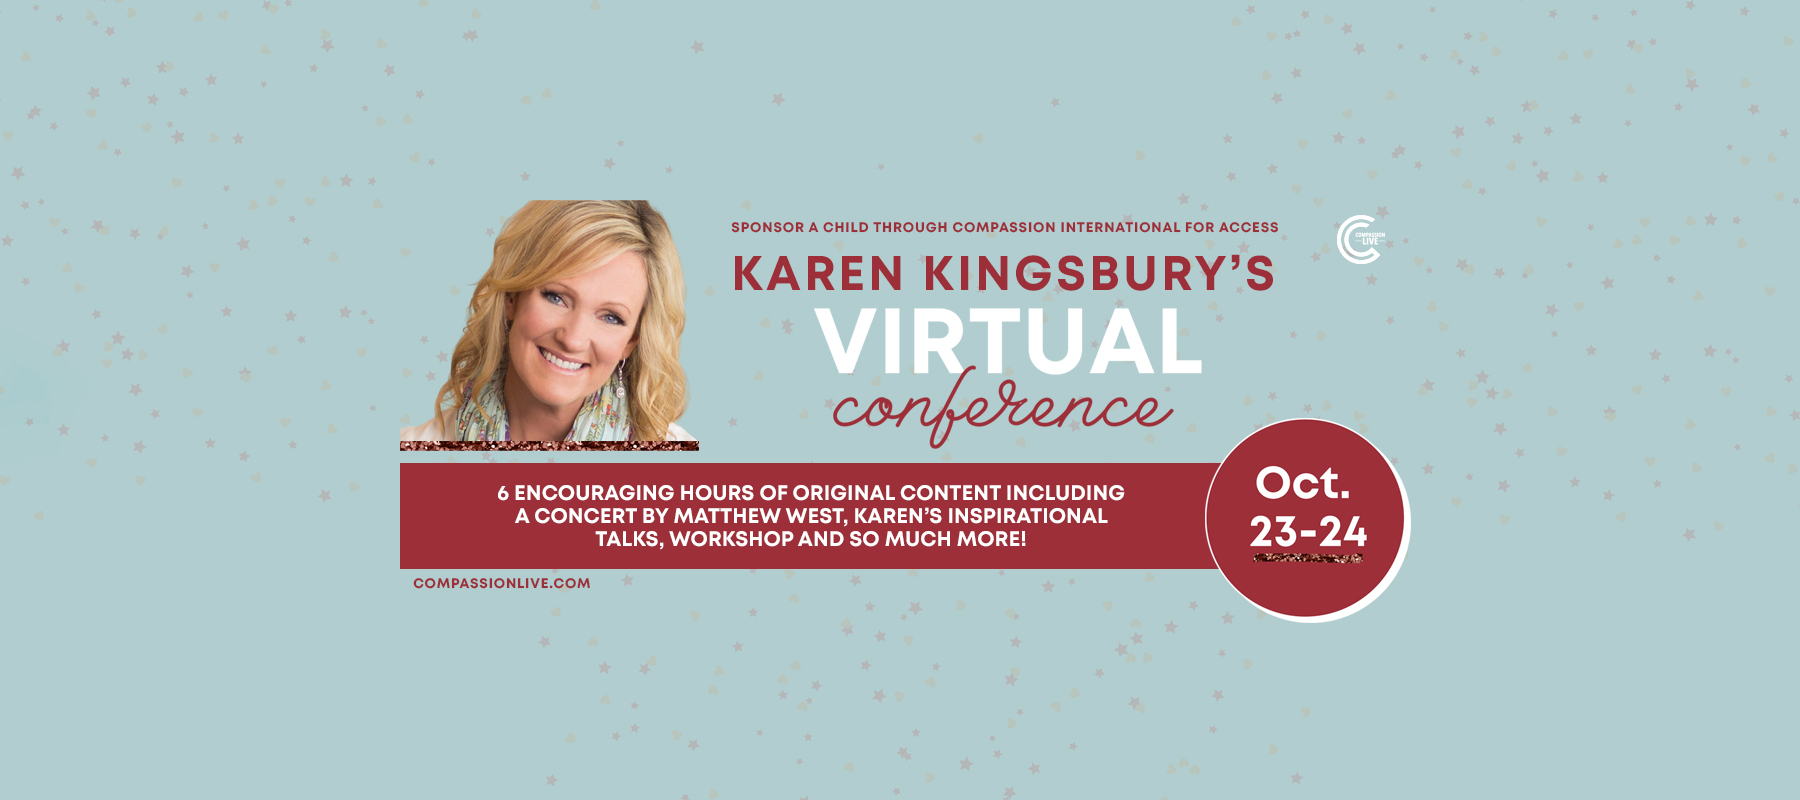 Karen Kingsbury's Virtual Conference logo